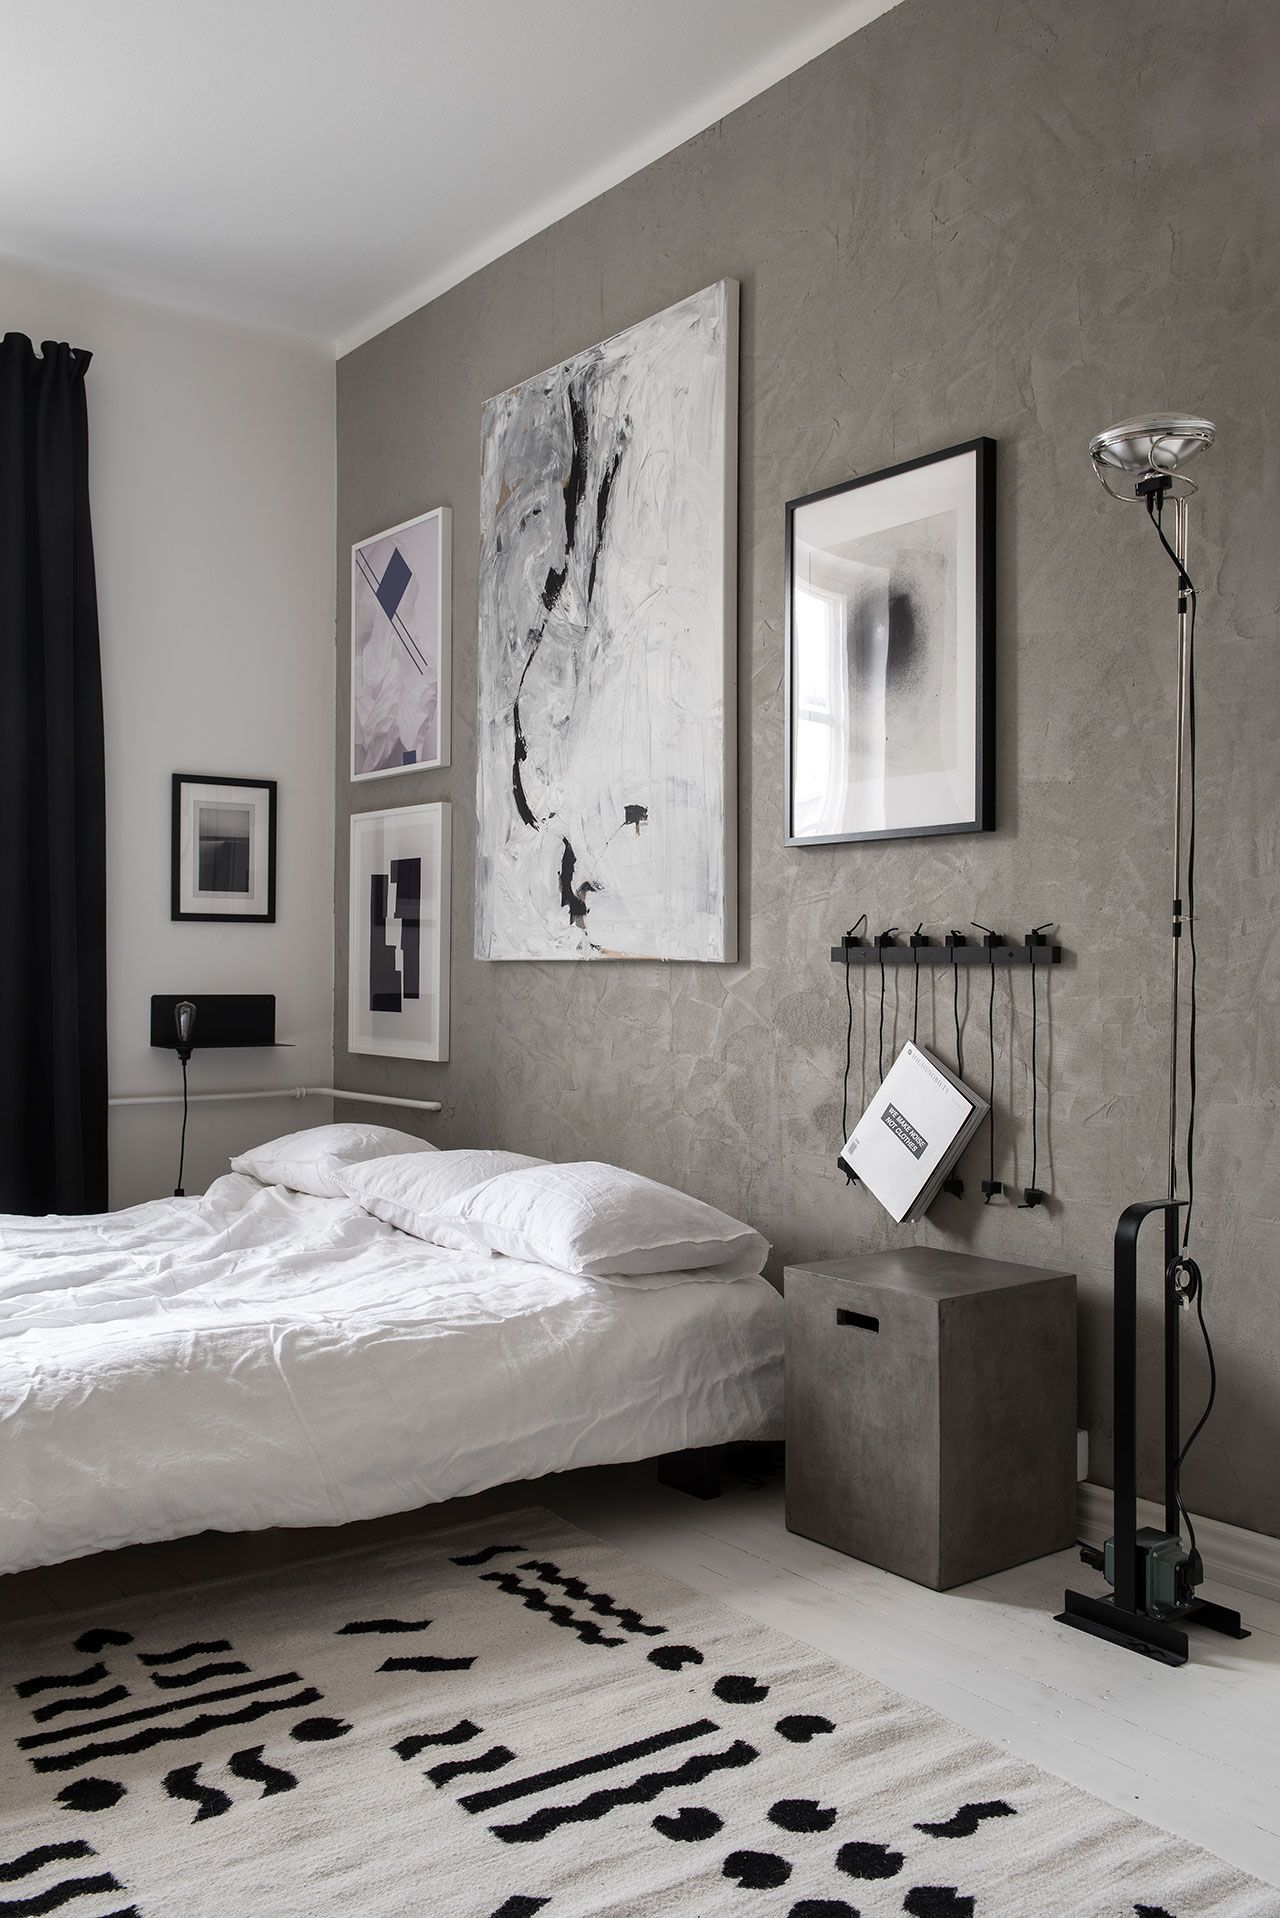 The Nordroom - Creative Headboard and Bedroom Styling Ideas (photography by Laura Seppanen)